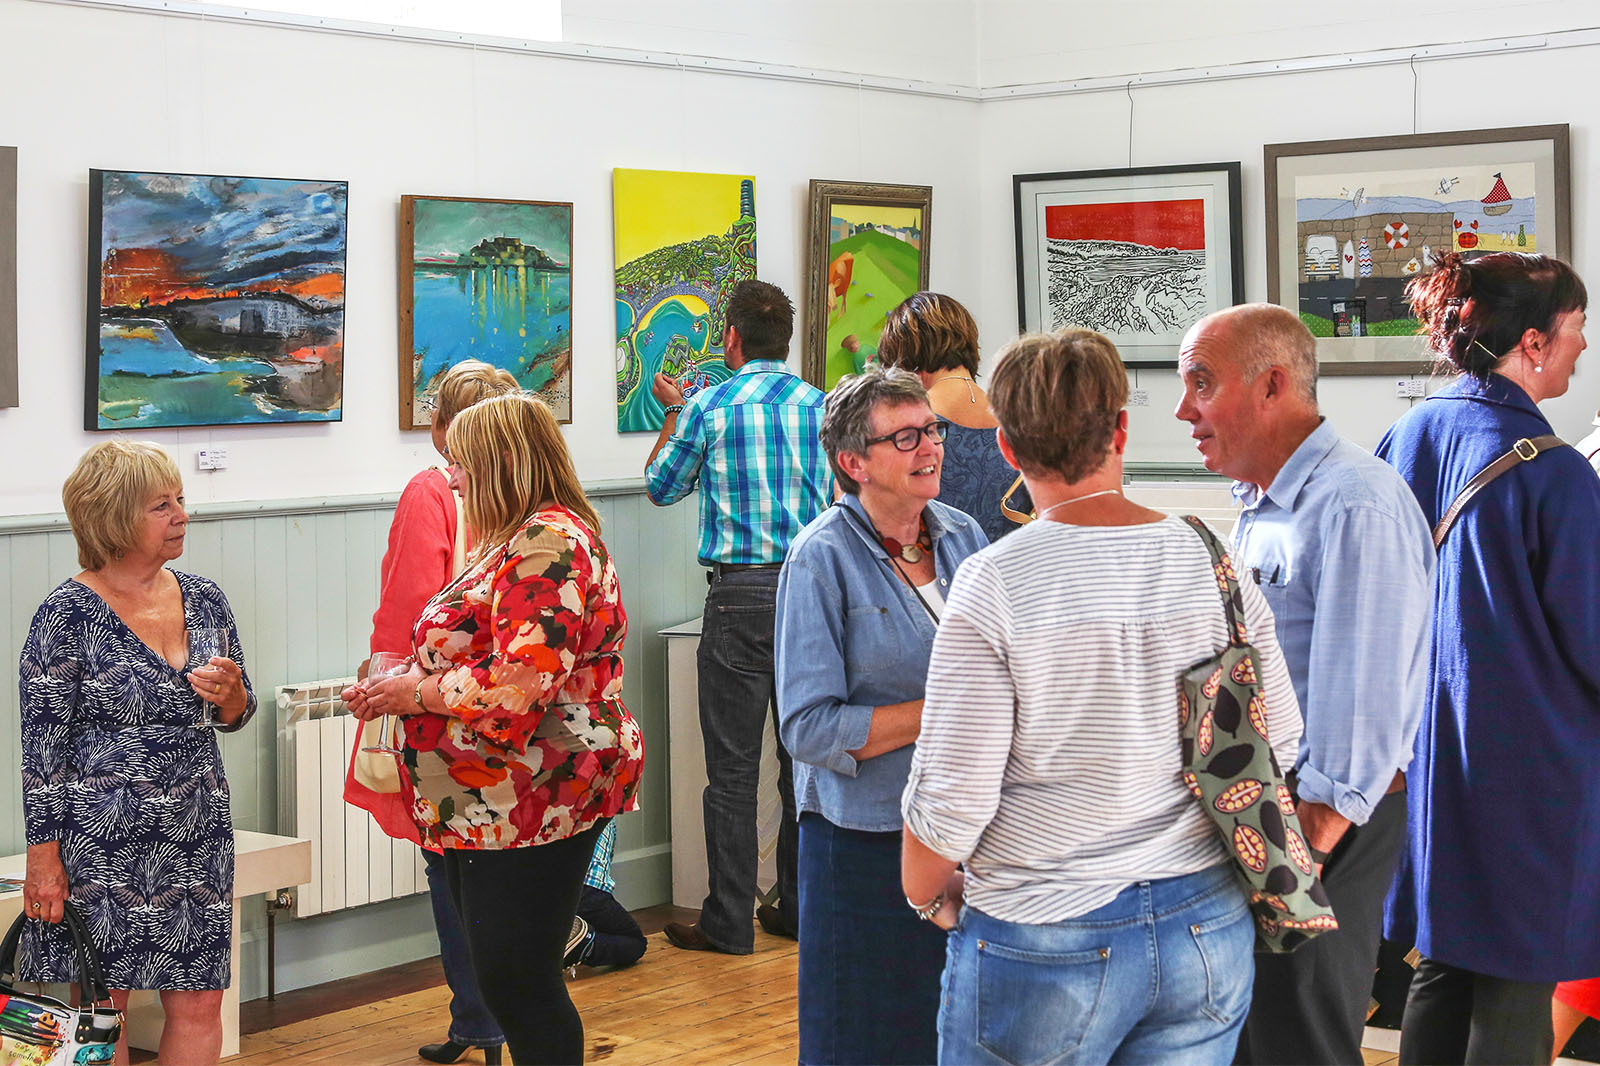 Guernsey Art Network – Celebrating the arts in Guernsey